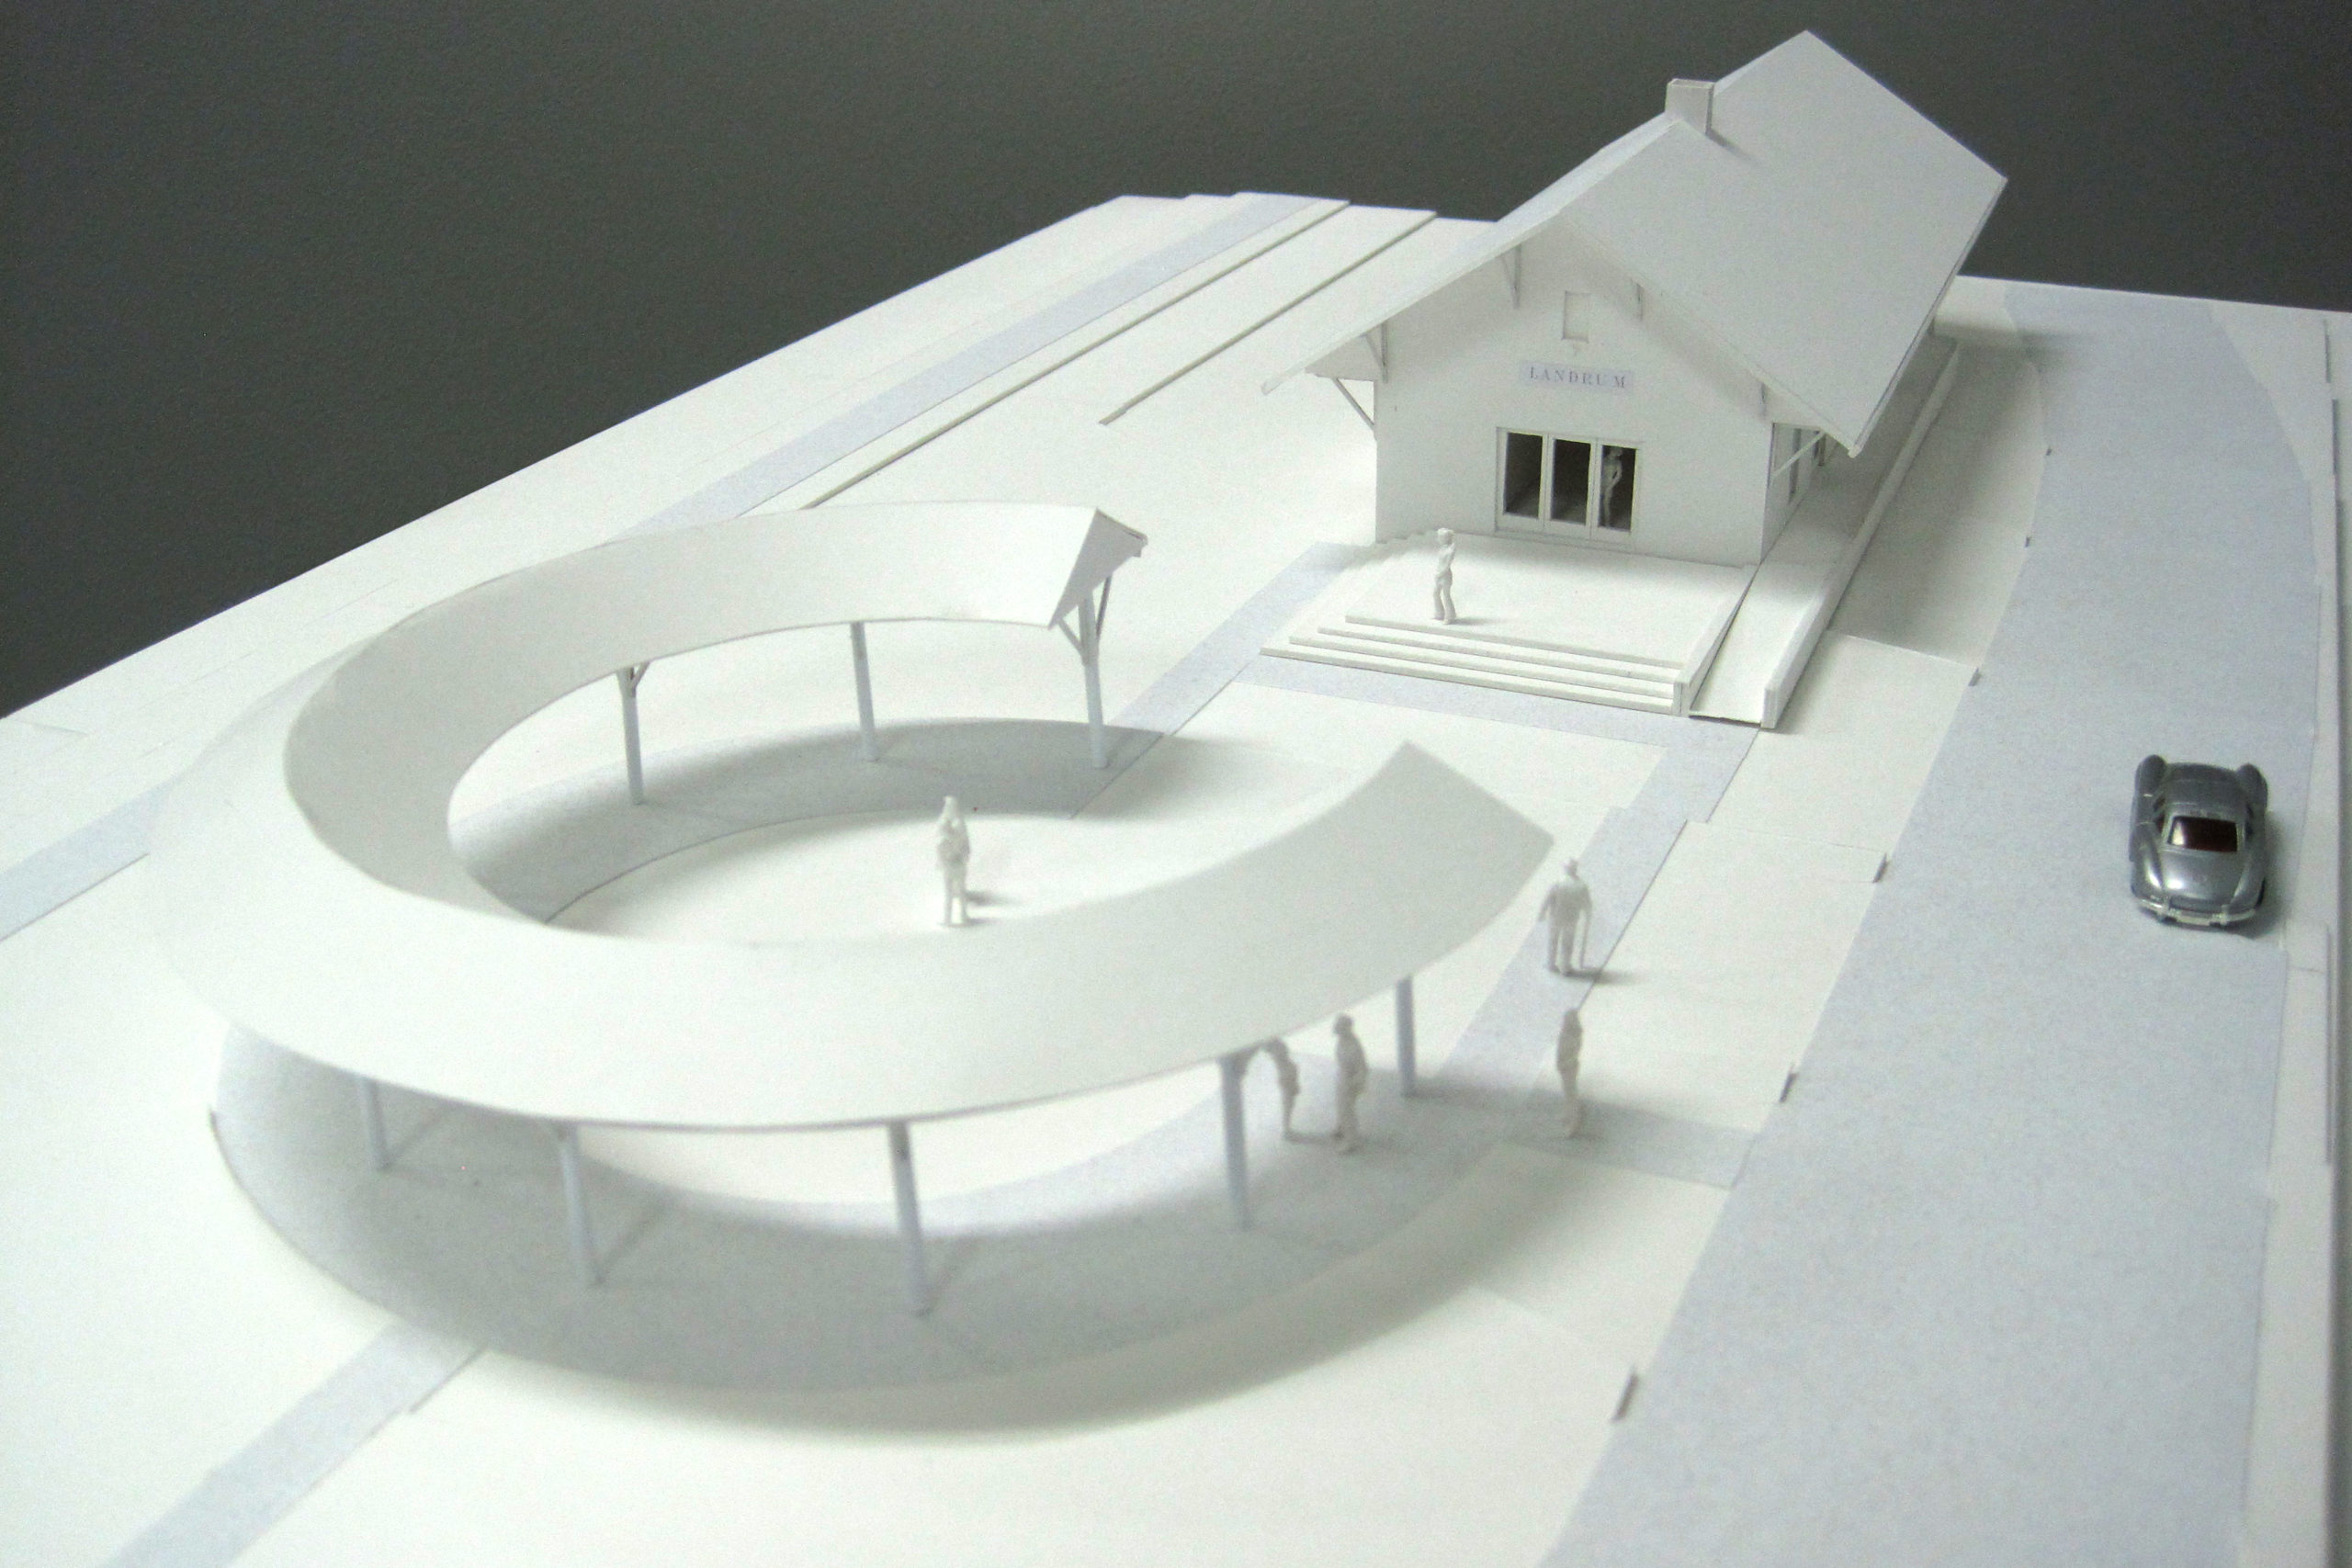 Model showing depot and exterior shelter.